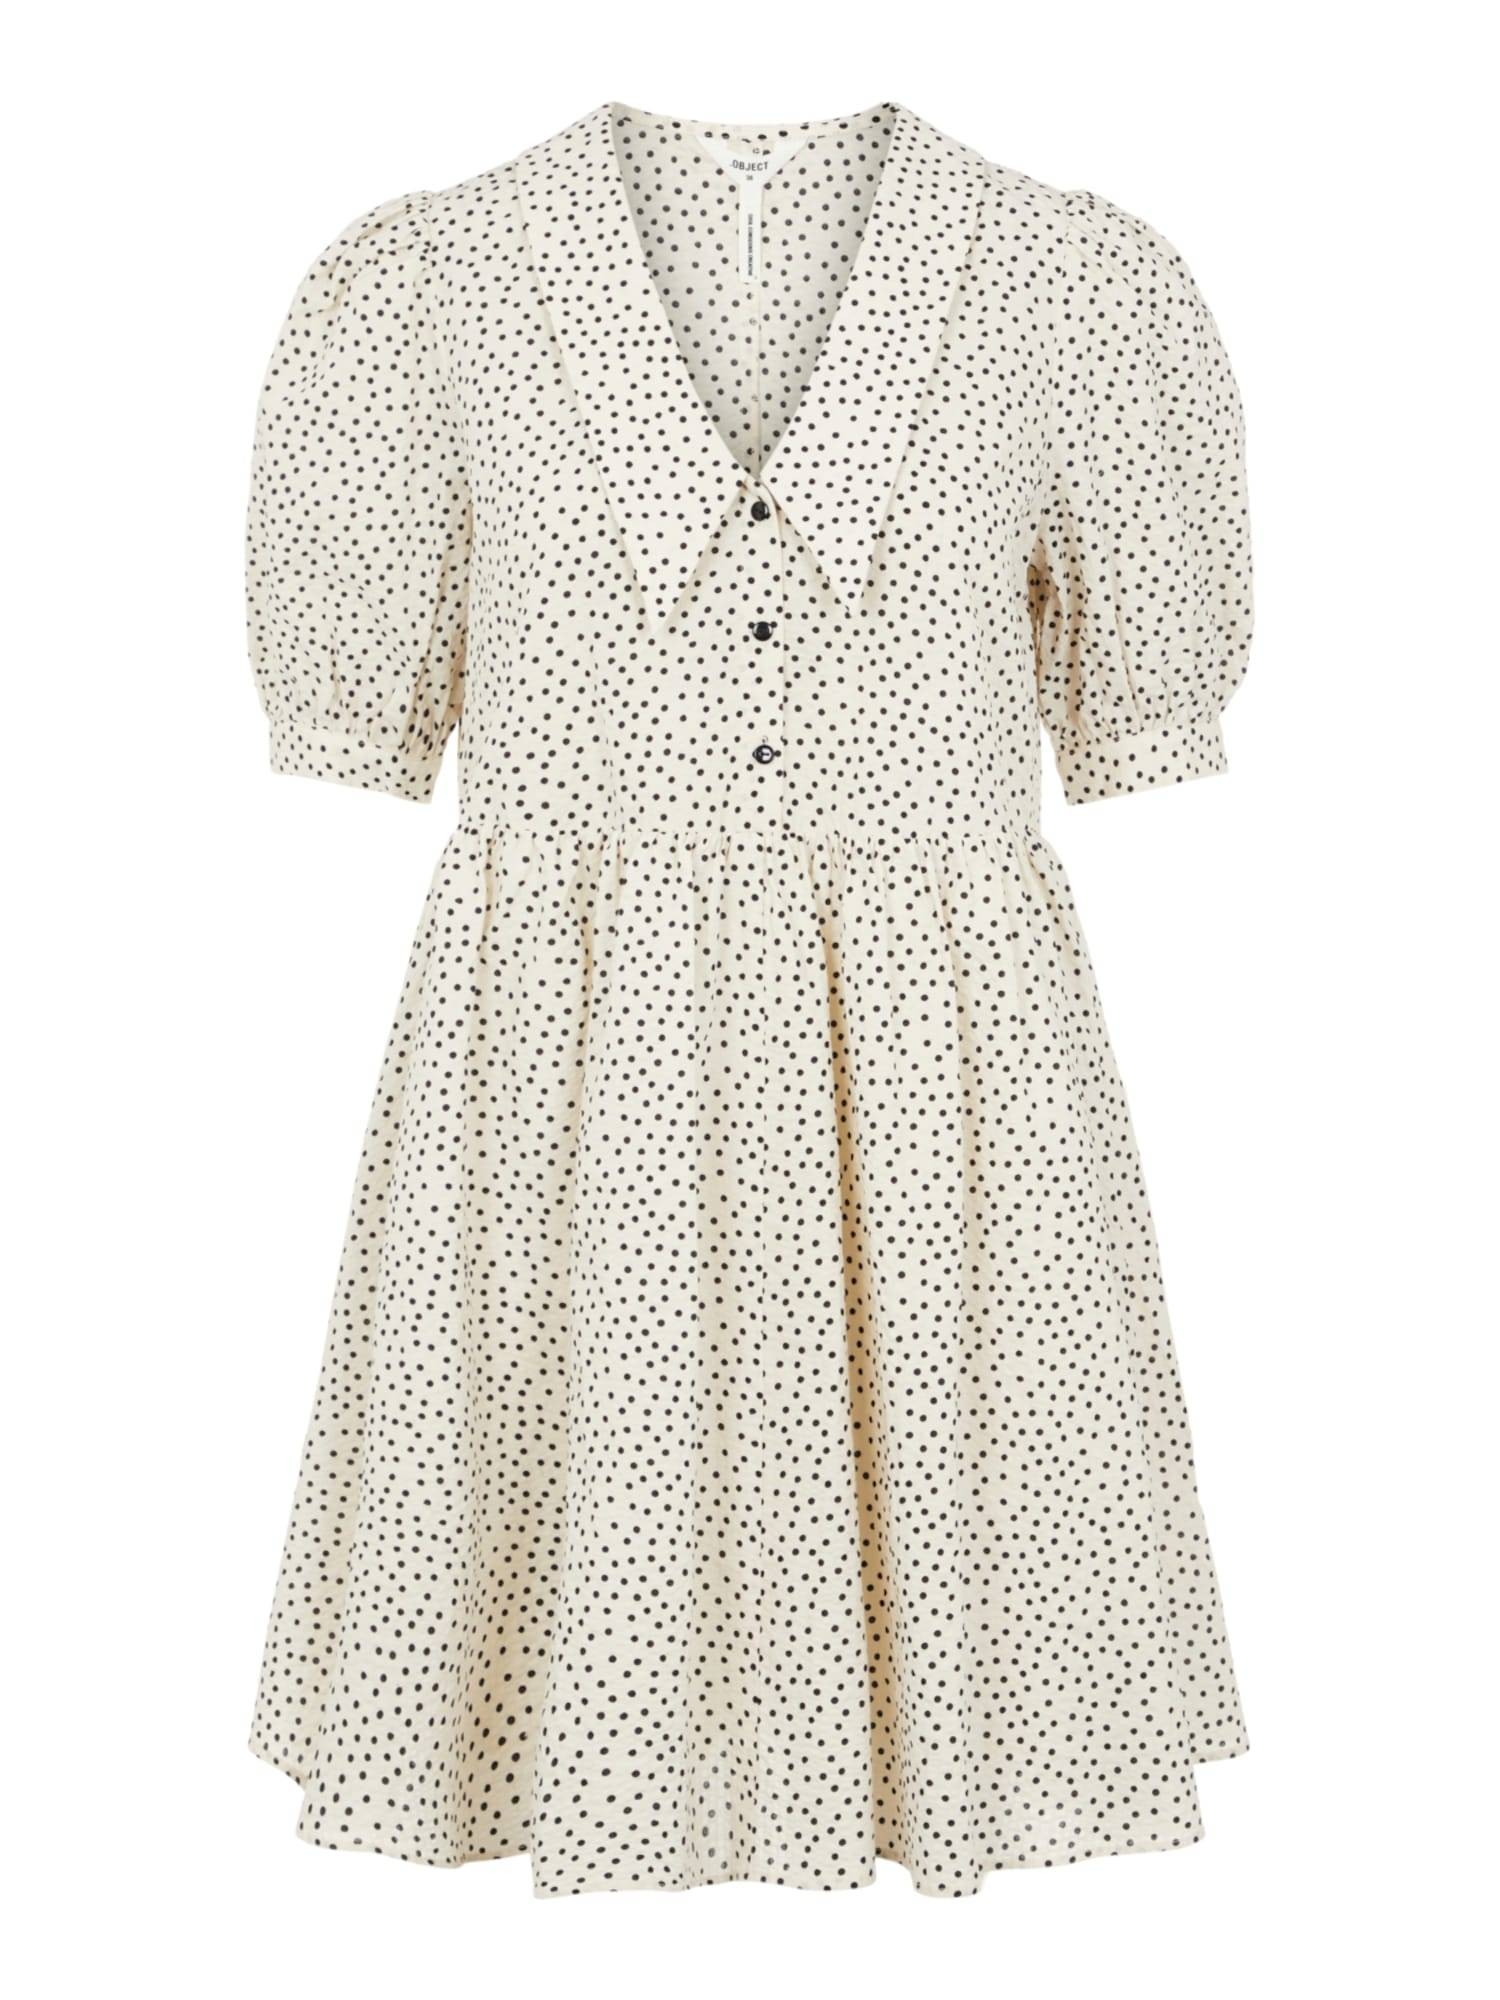 OBJECT Robe-chemise 'Nour'  - Beige - Taille: 42 - female